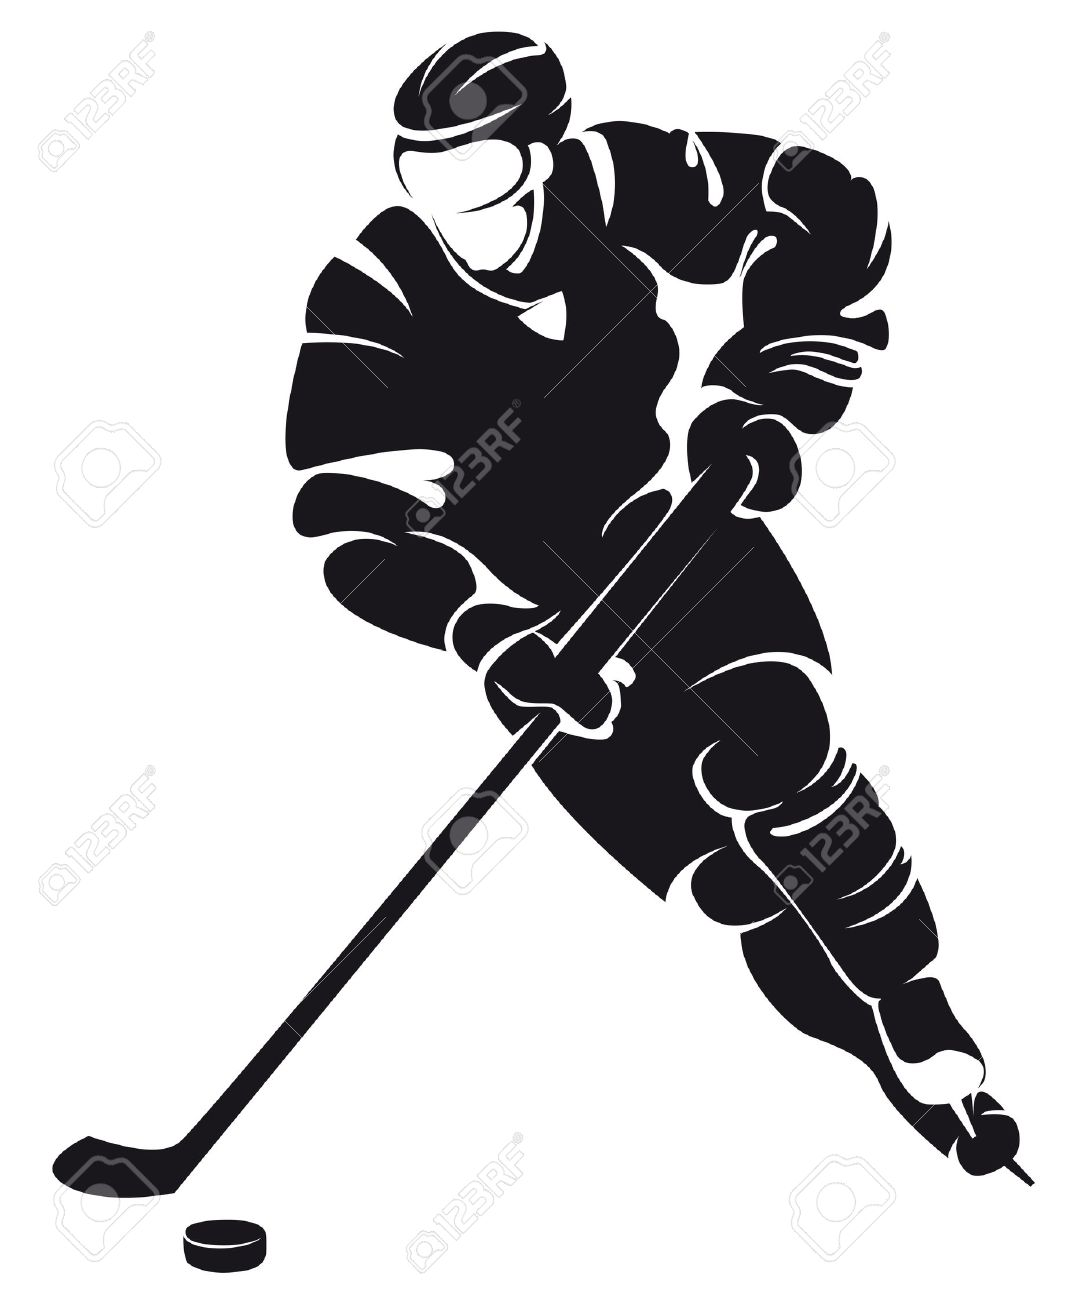 hockey player, silhouette Stock Vector - 17476943